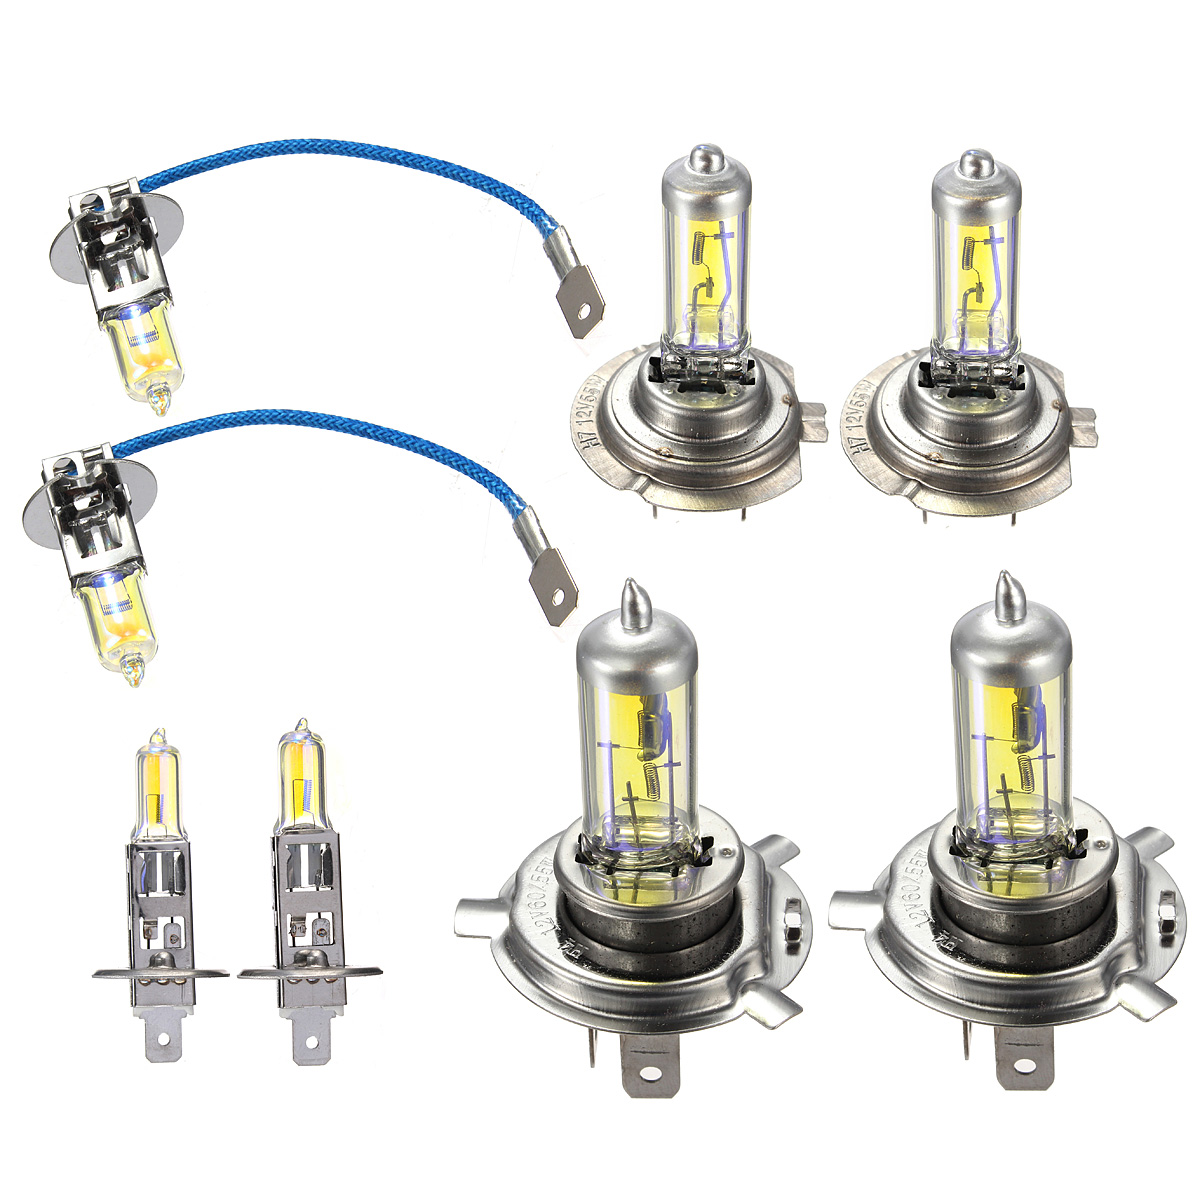 Car Halogen Headlights Bulbs H1 H3 H4 H7 Driving Fog Lamp 60/55W 12V Amber 2Pcs